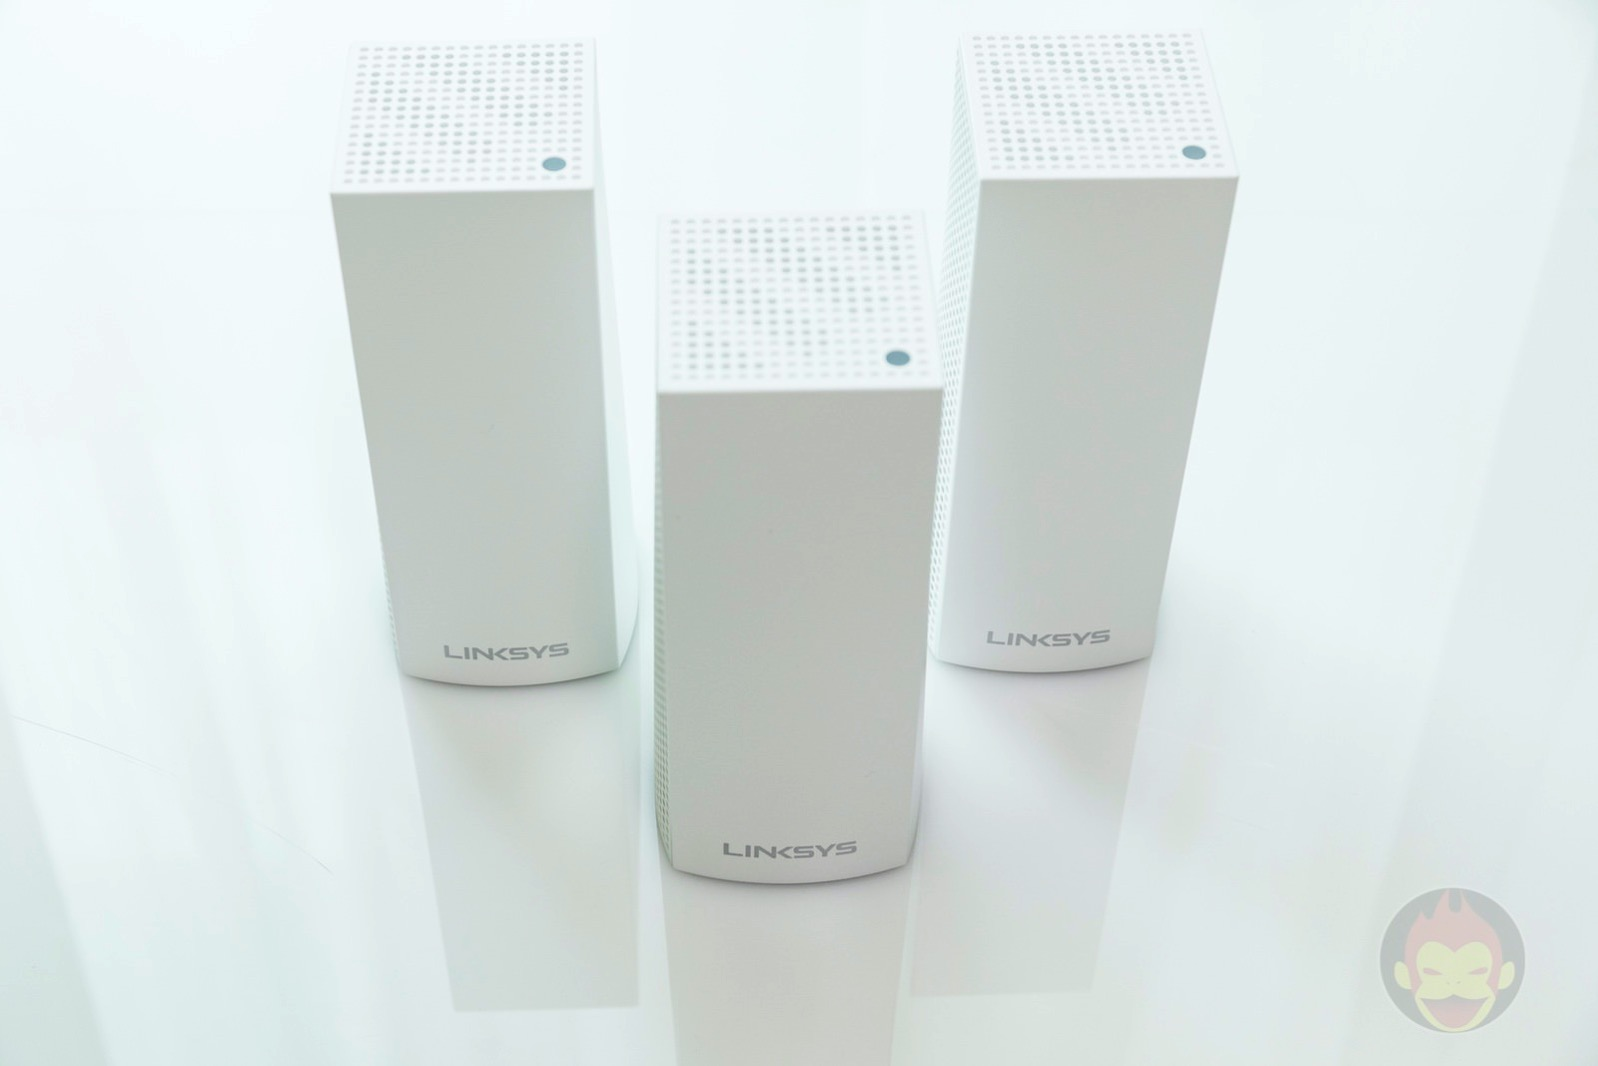 Linksys Velop WiFi Router 03